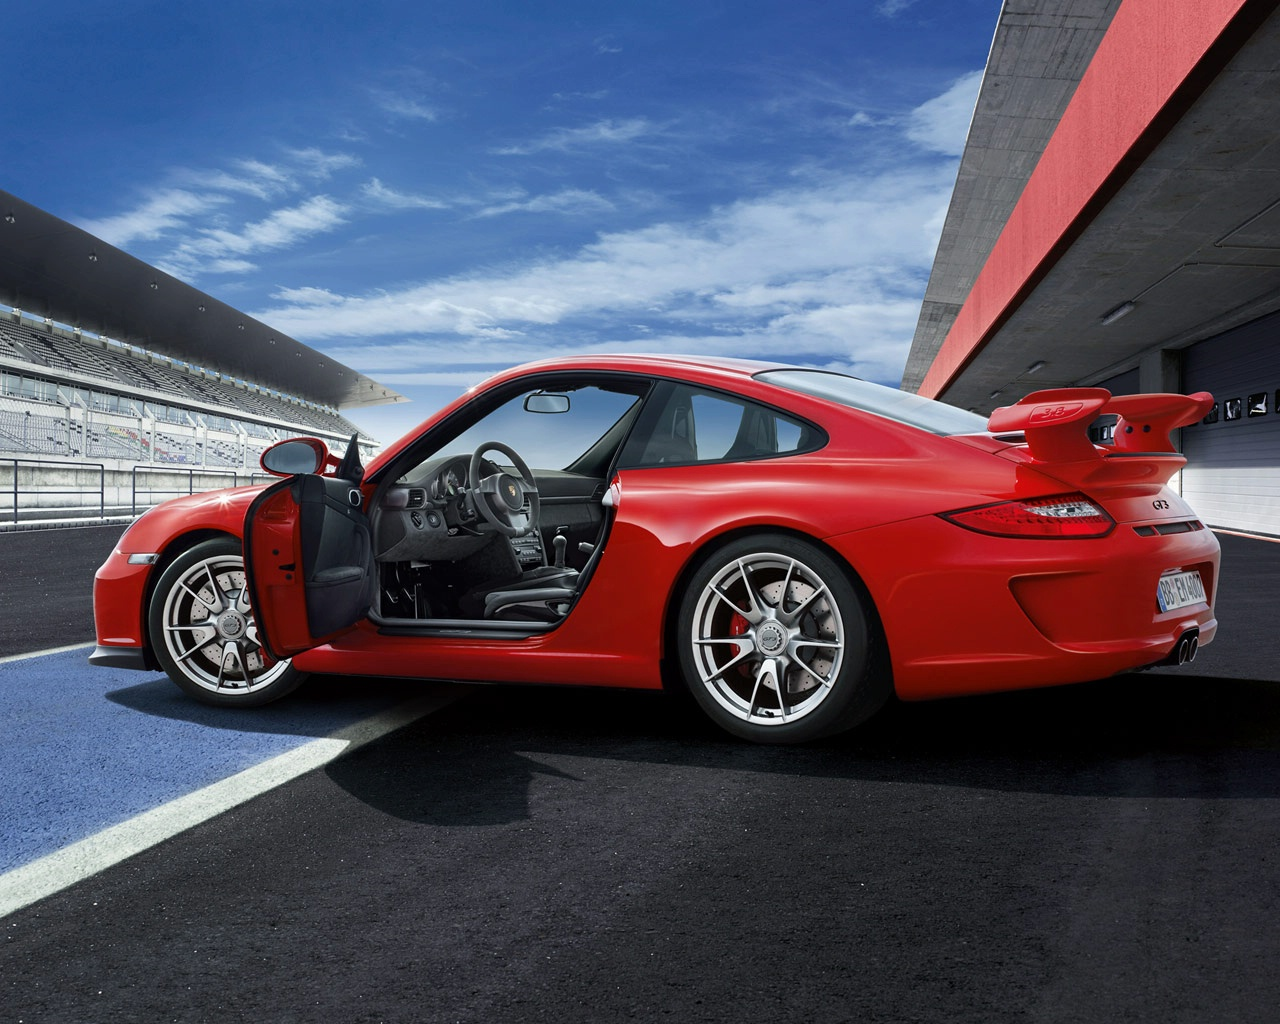 ����� ���� ����� ���� 911 gt3 rs ����� 2015